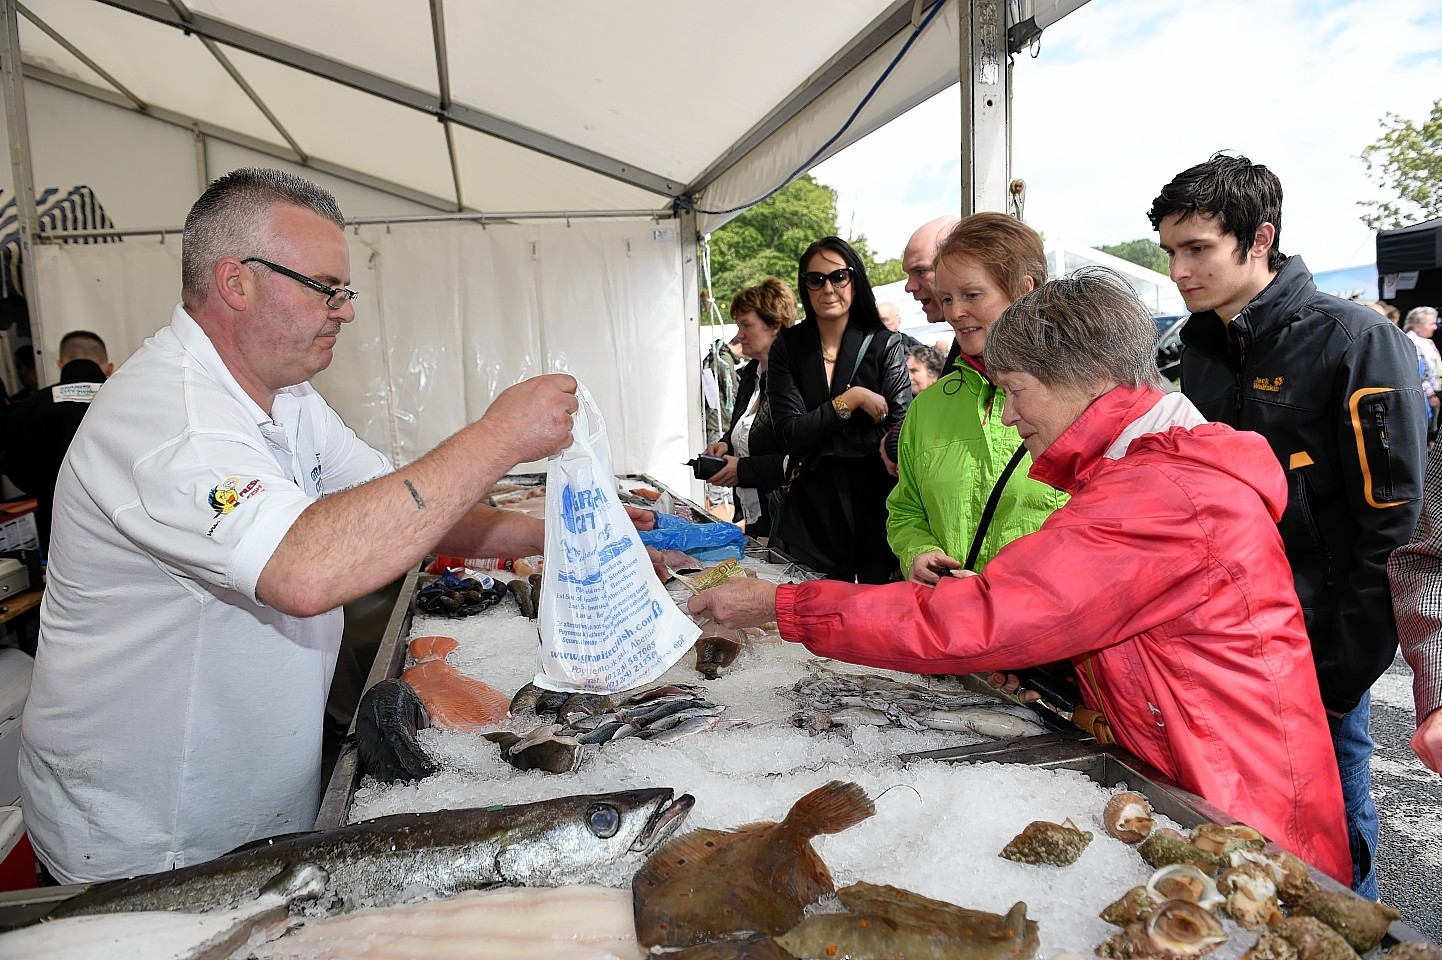 Taste of Grampian food and drink festival 2015 held at Thainstone, Aberdeenshire.